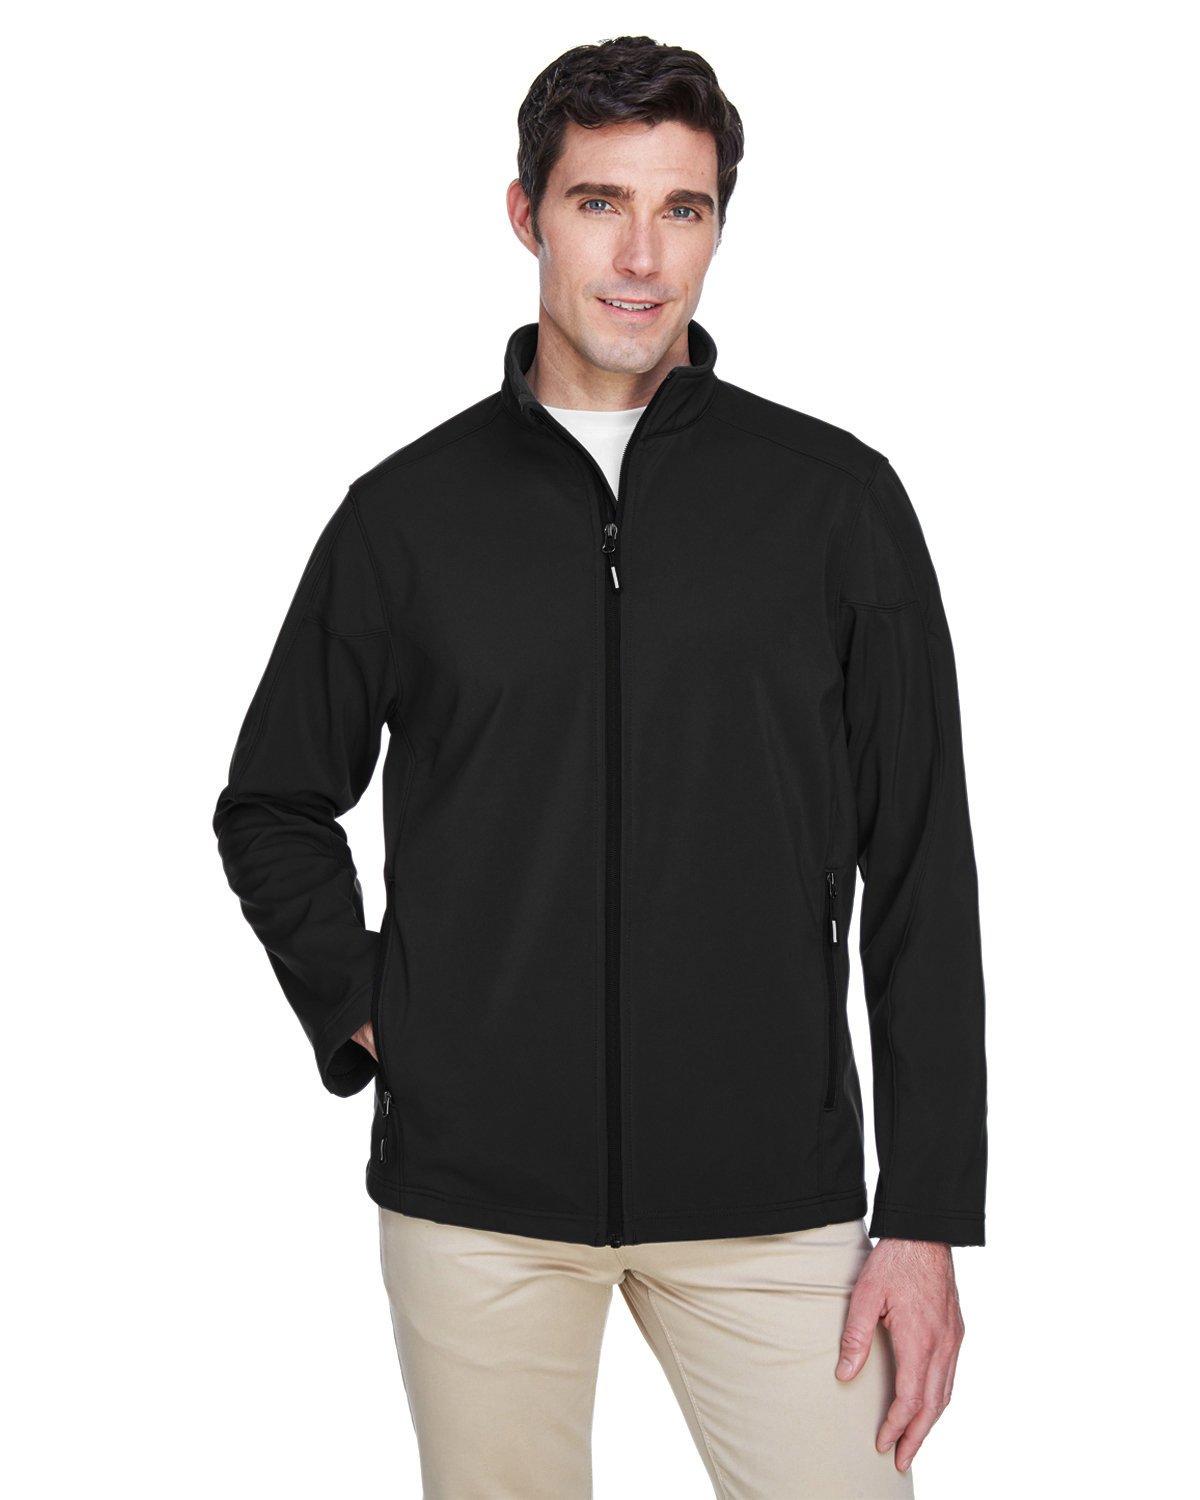 Core 365 Men's Tall Cruise Two-Layer Fleece Bonded SoftShell Jacket BLACK